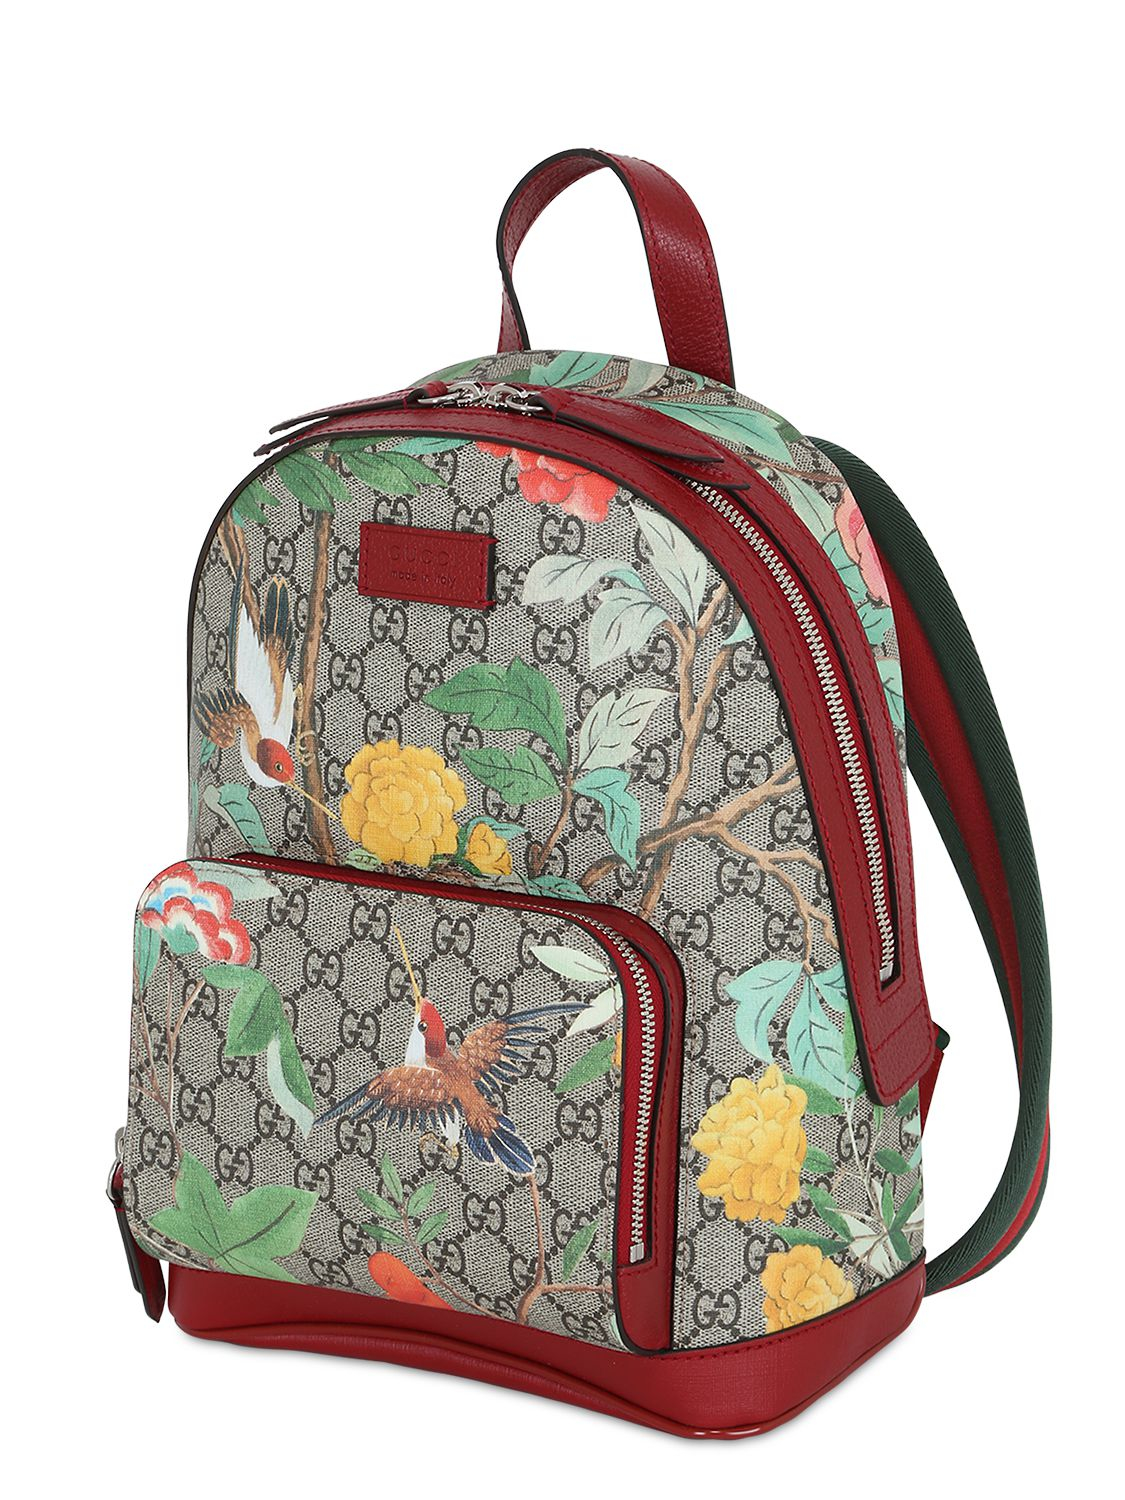 c21ffe2d3655 Gucci Tian GG Supreme Leather Backpack for Men - Lyst